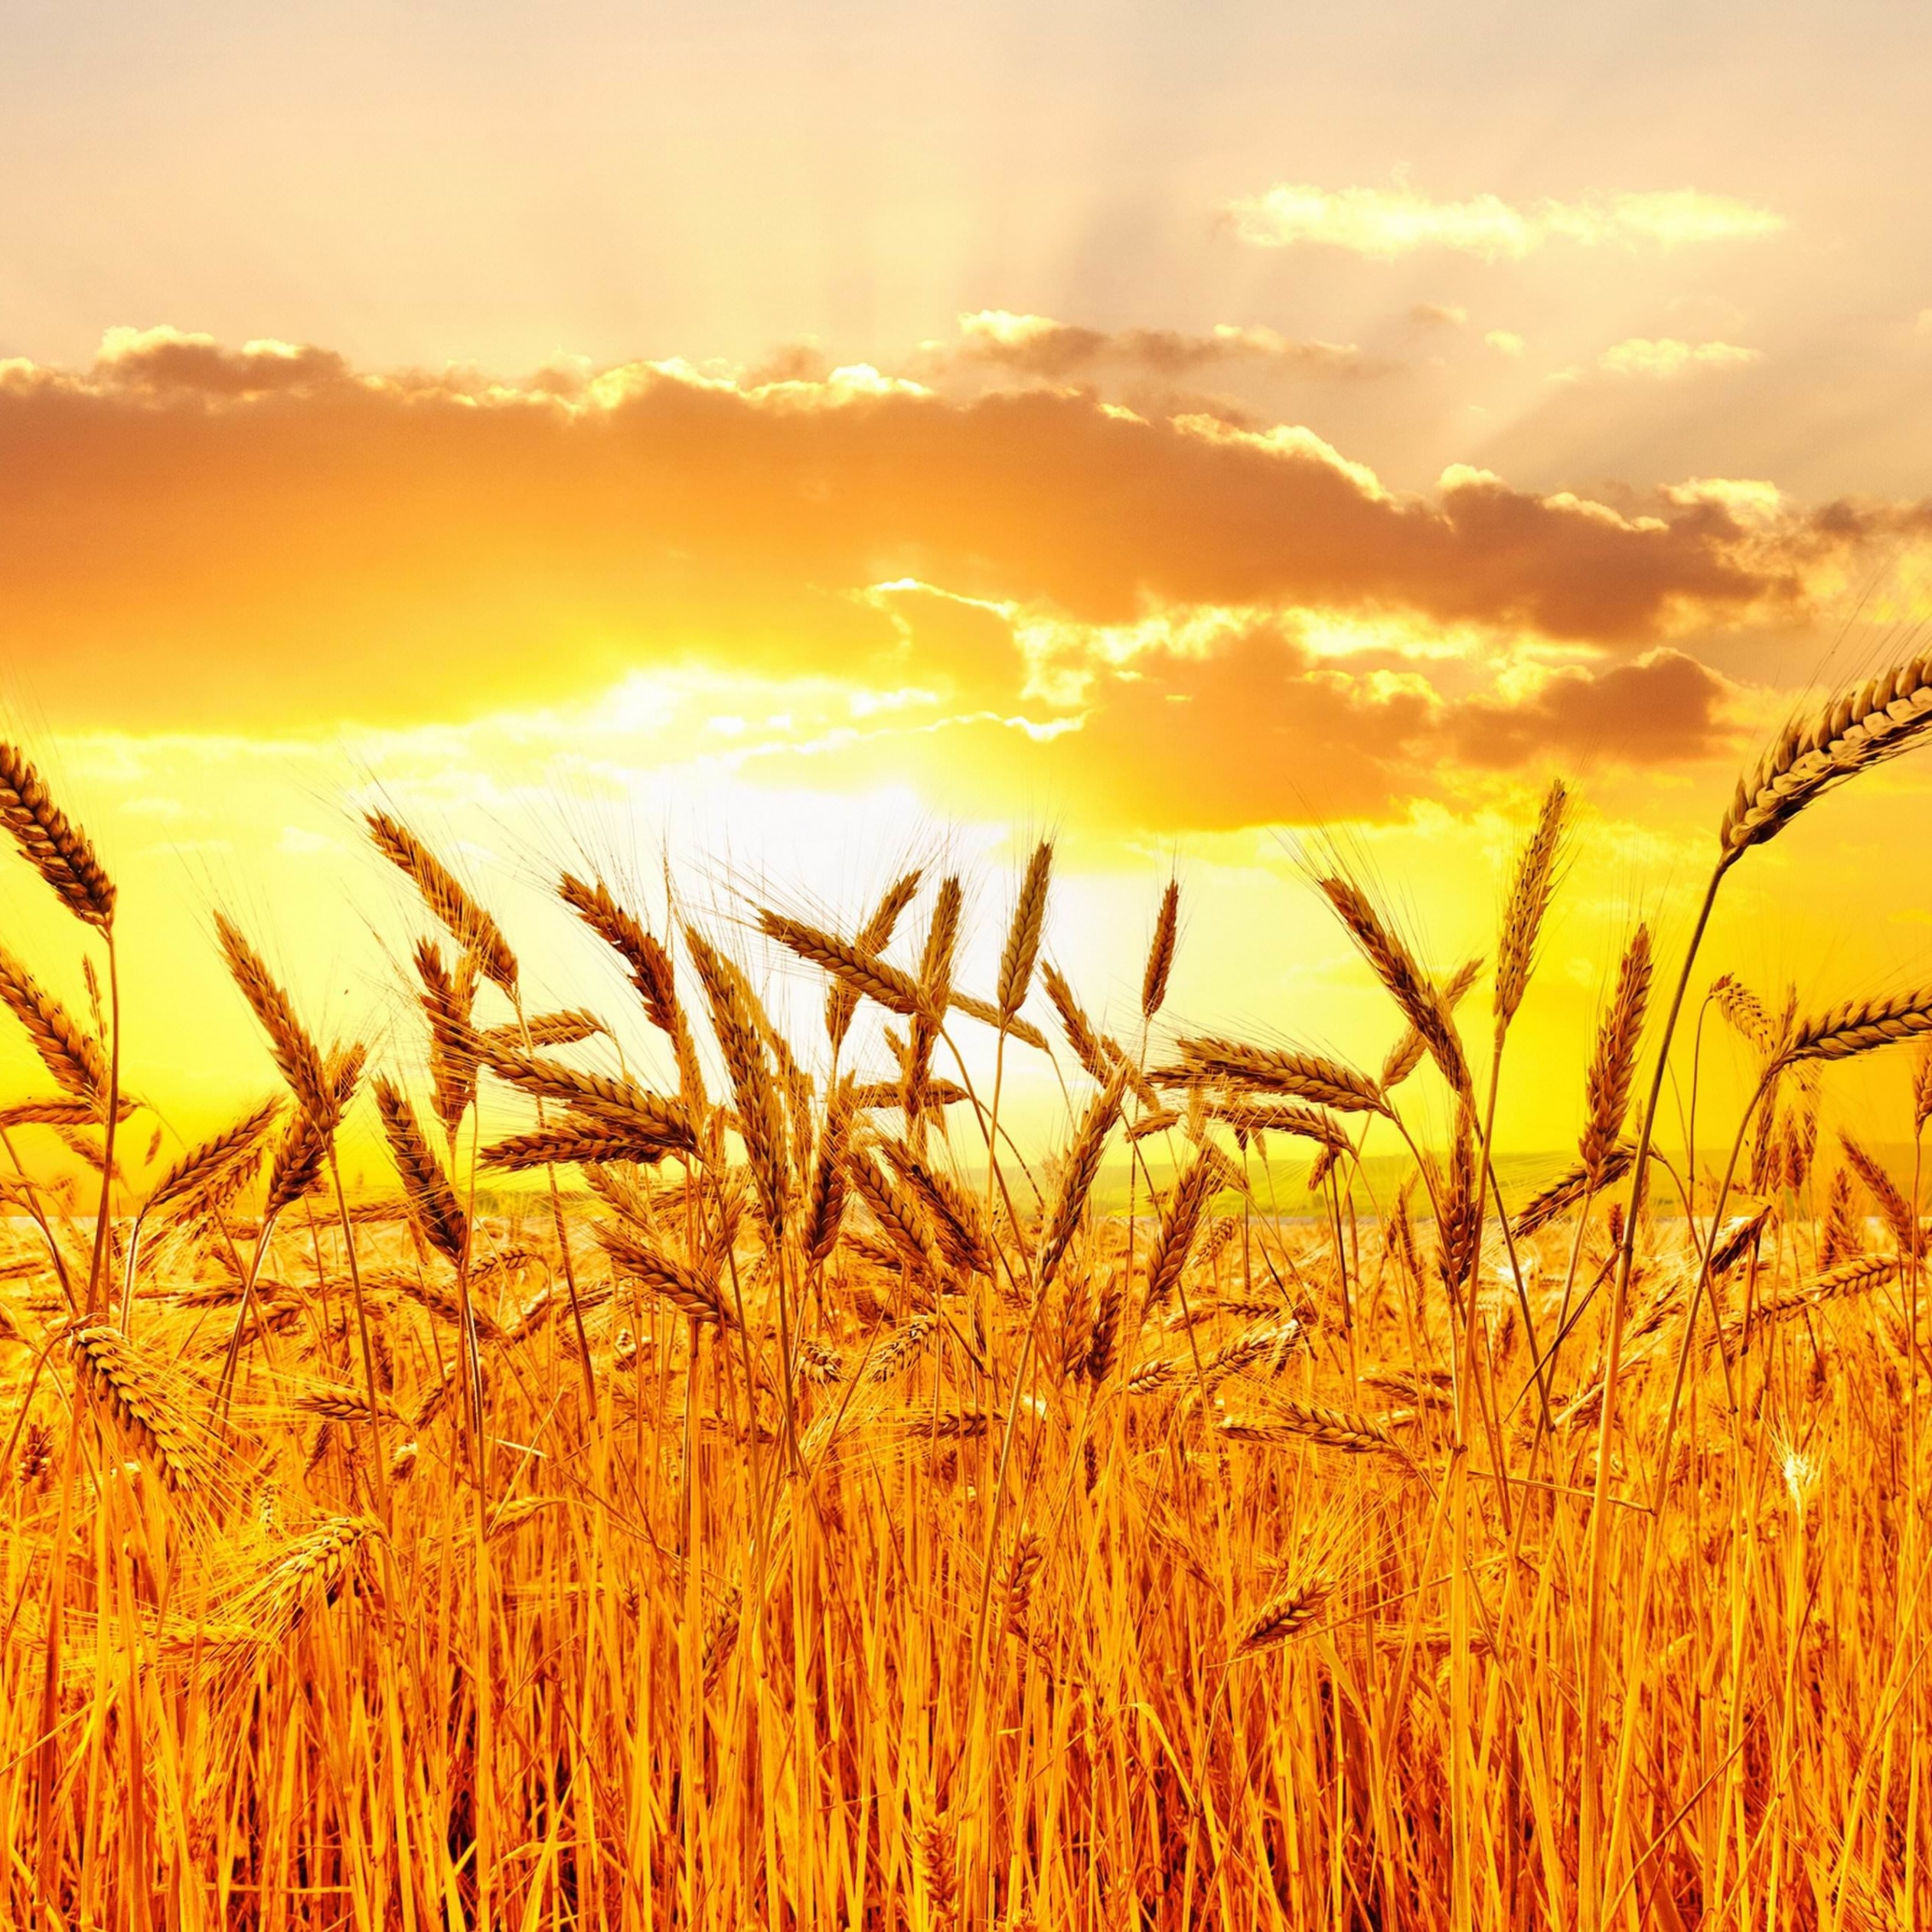 Golden Wheat Field At Sunset Wallpaper for Apple iPad 3